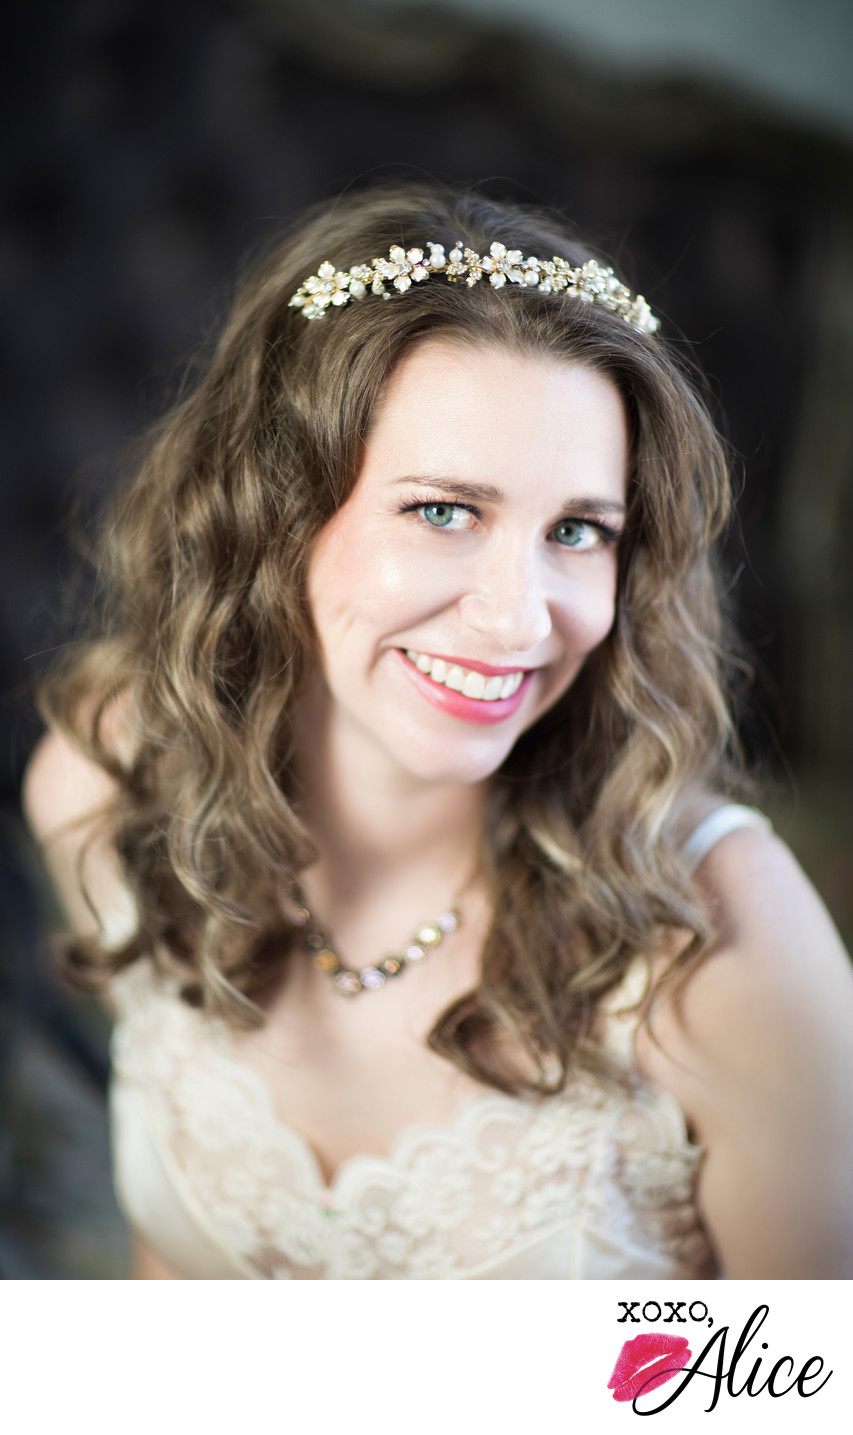 Wear Your Bridal Jewelry in Your Boudoir Session